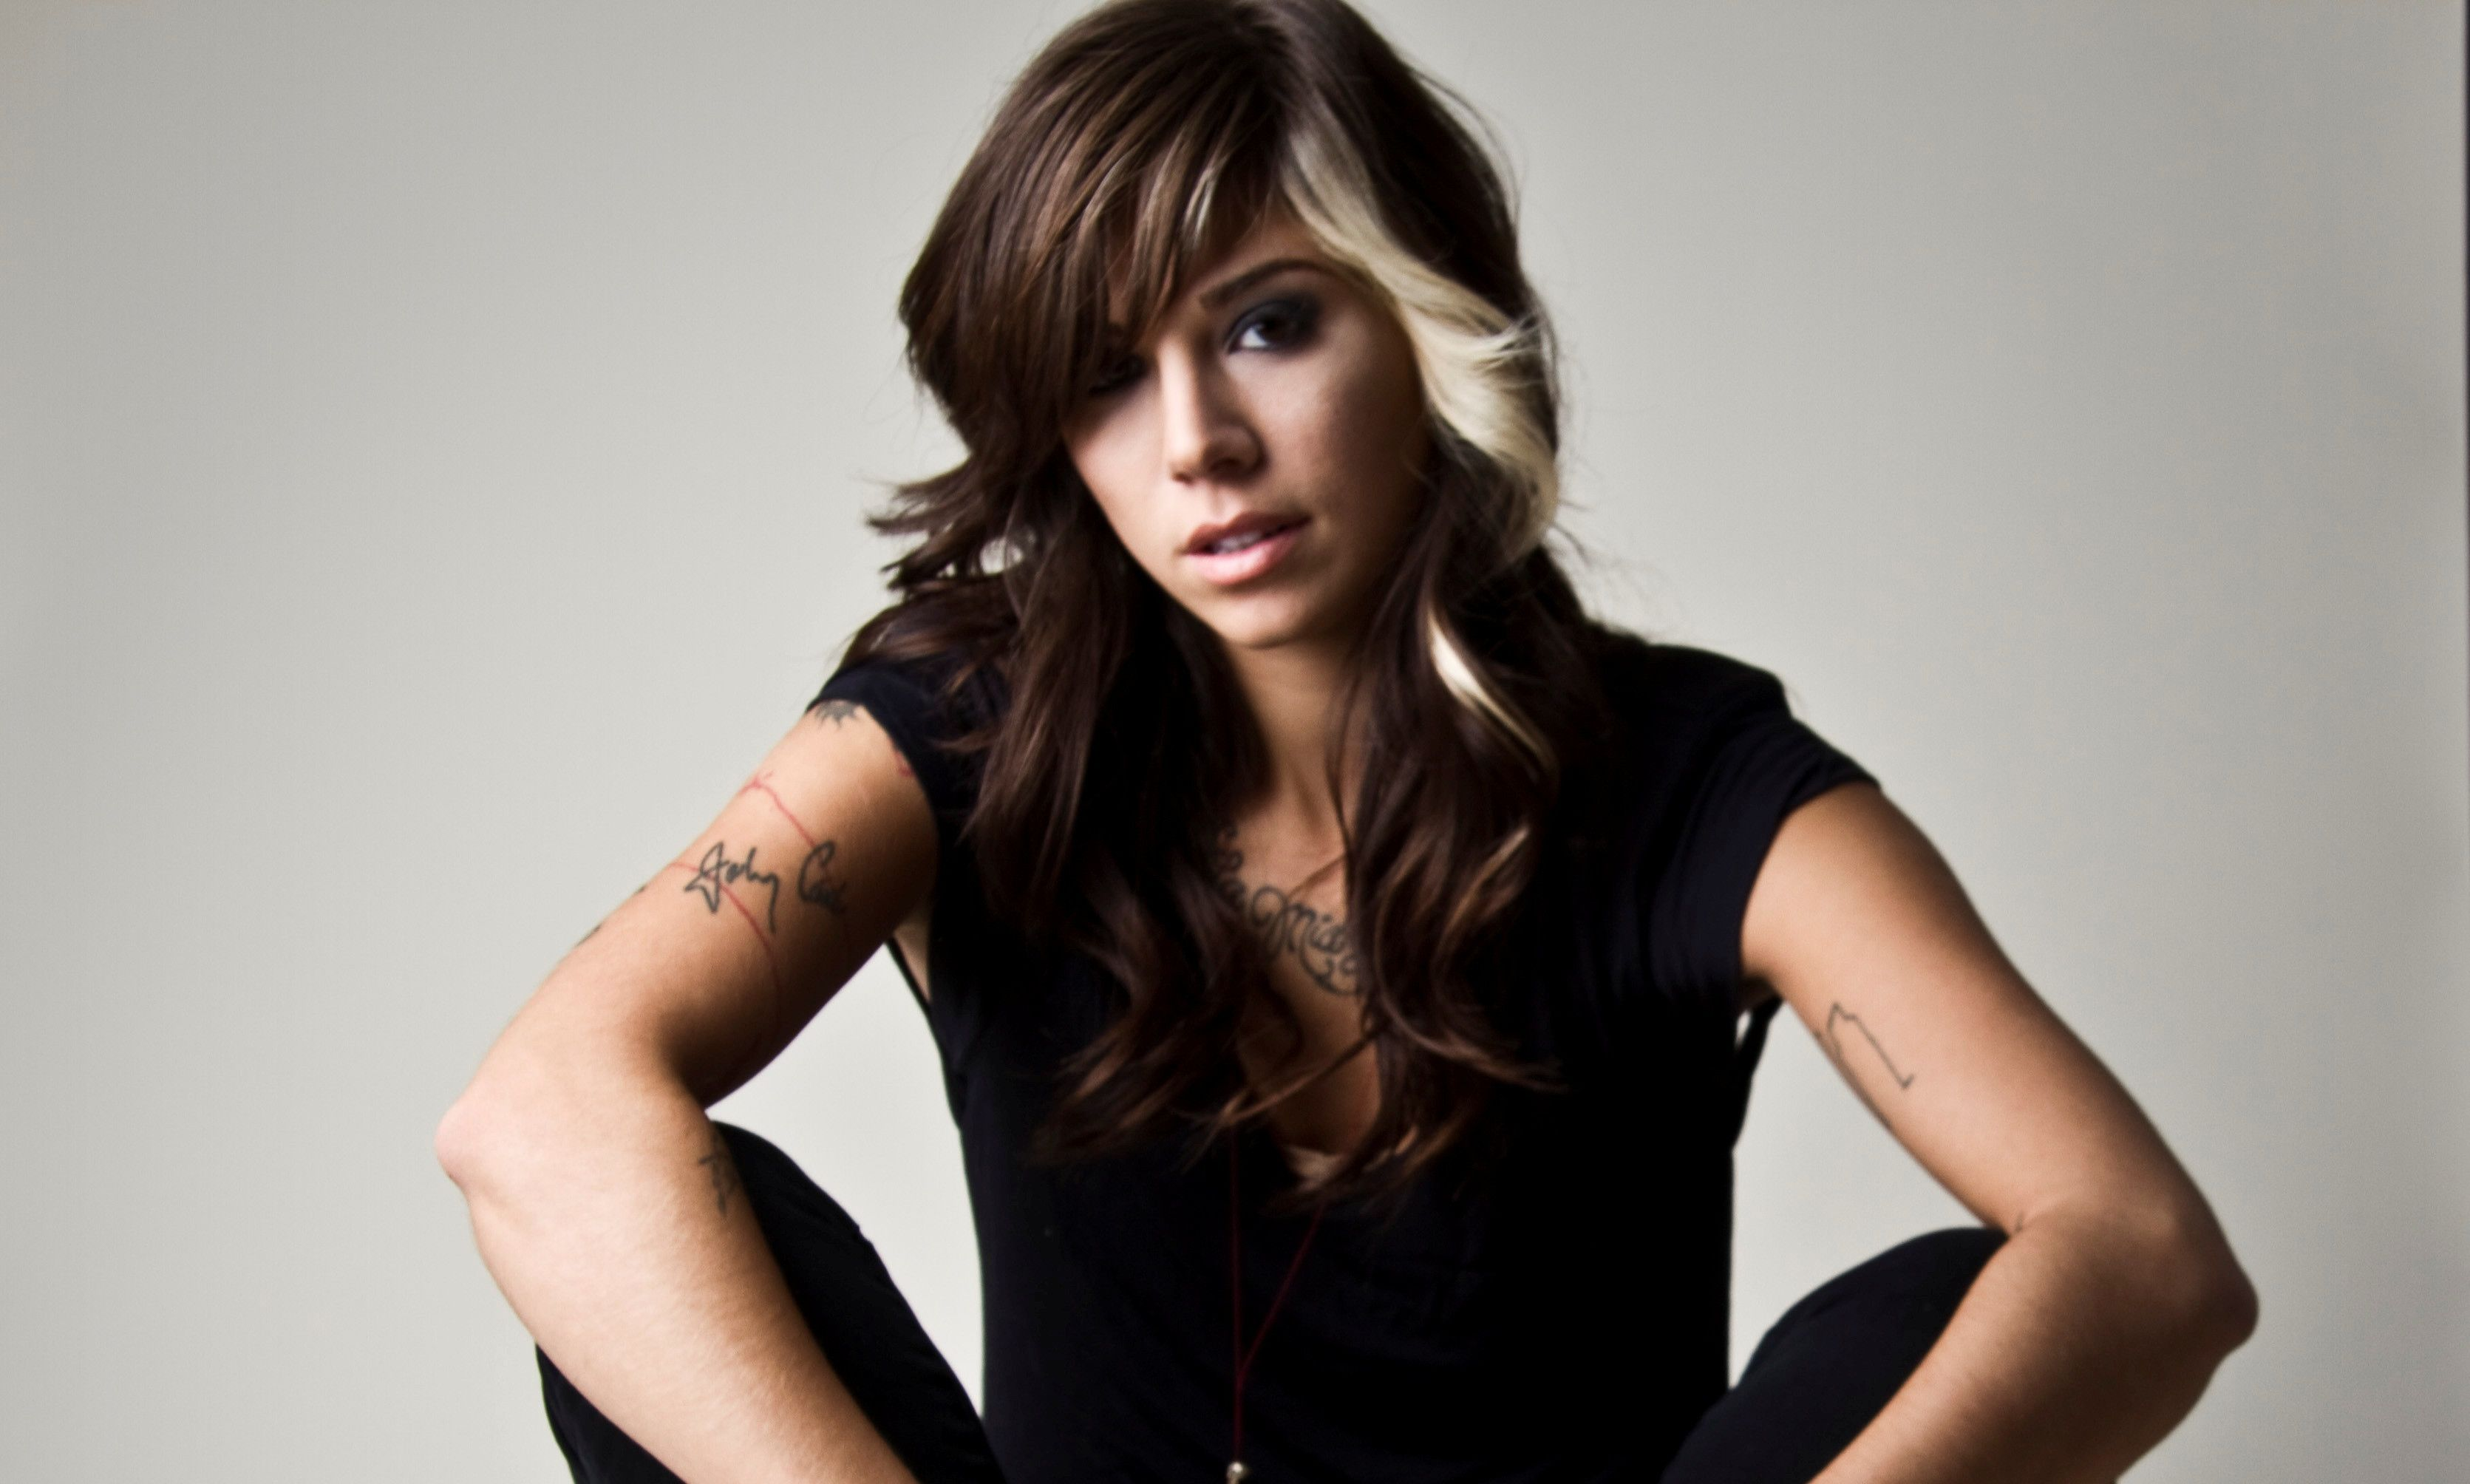 Christina Perri Wallpapers 3342x2008